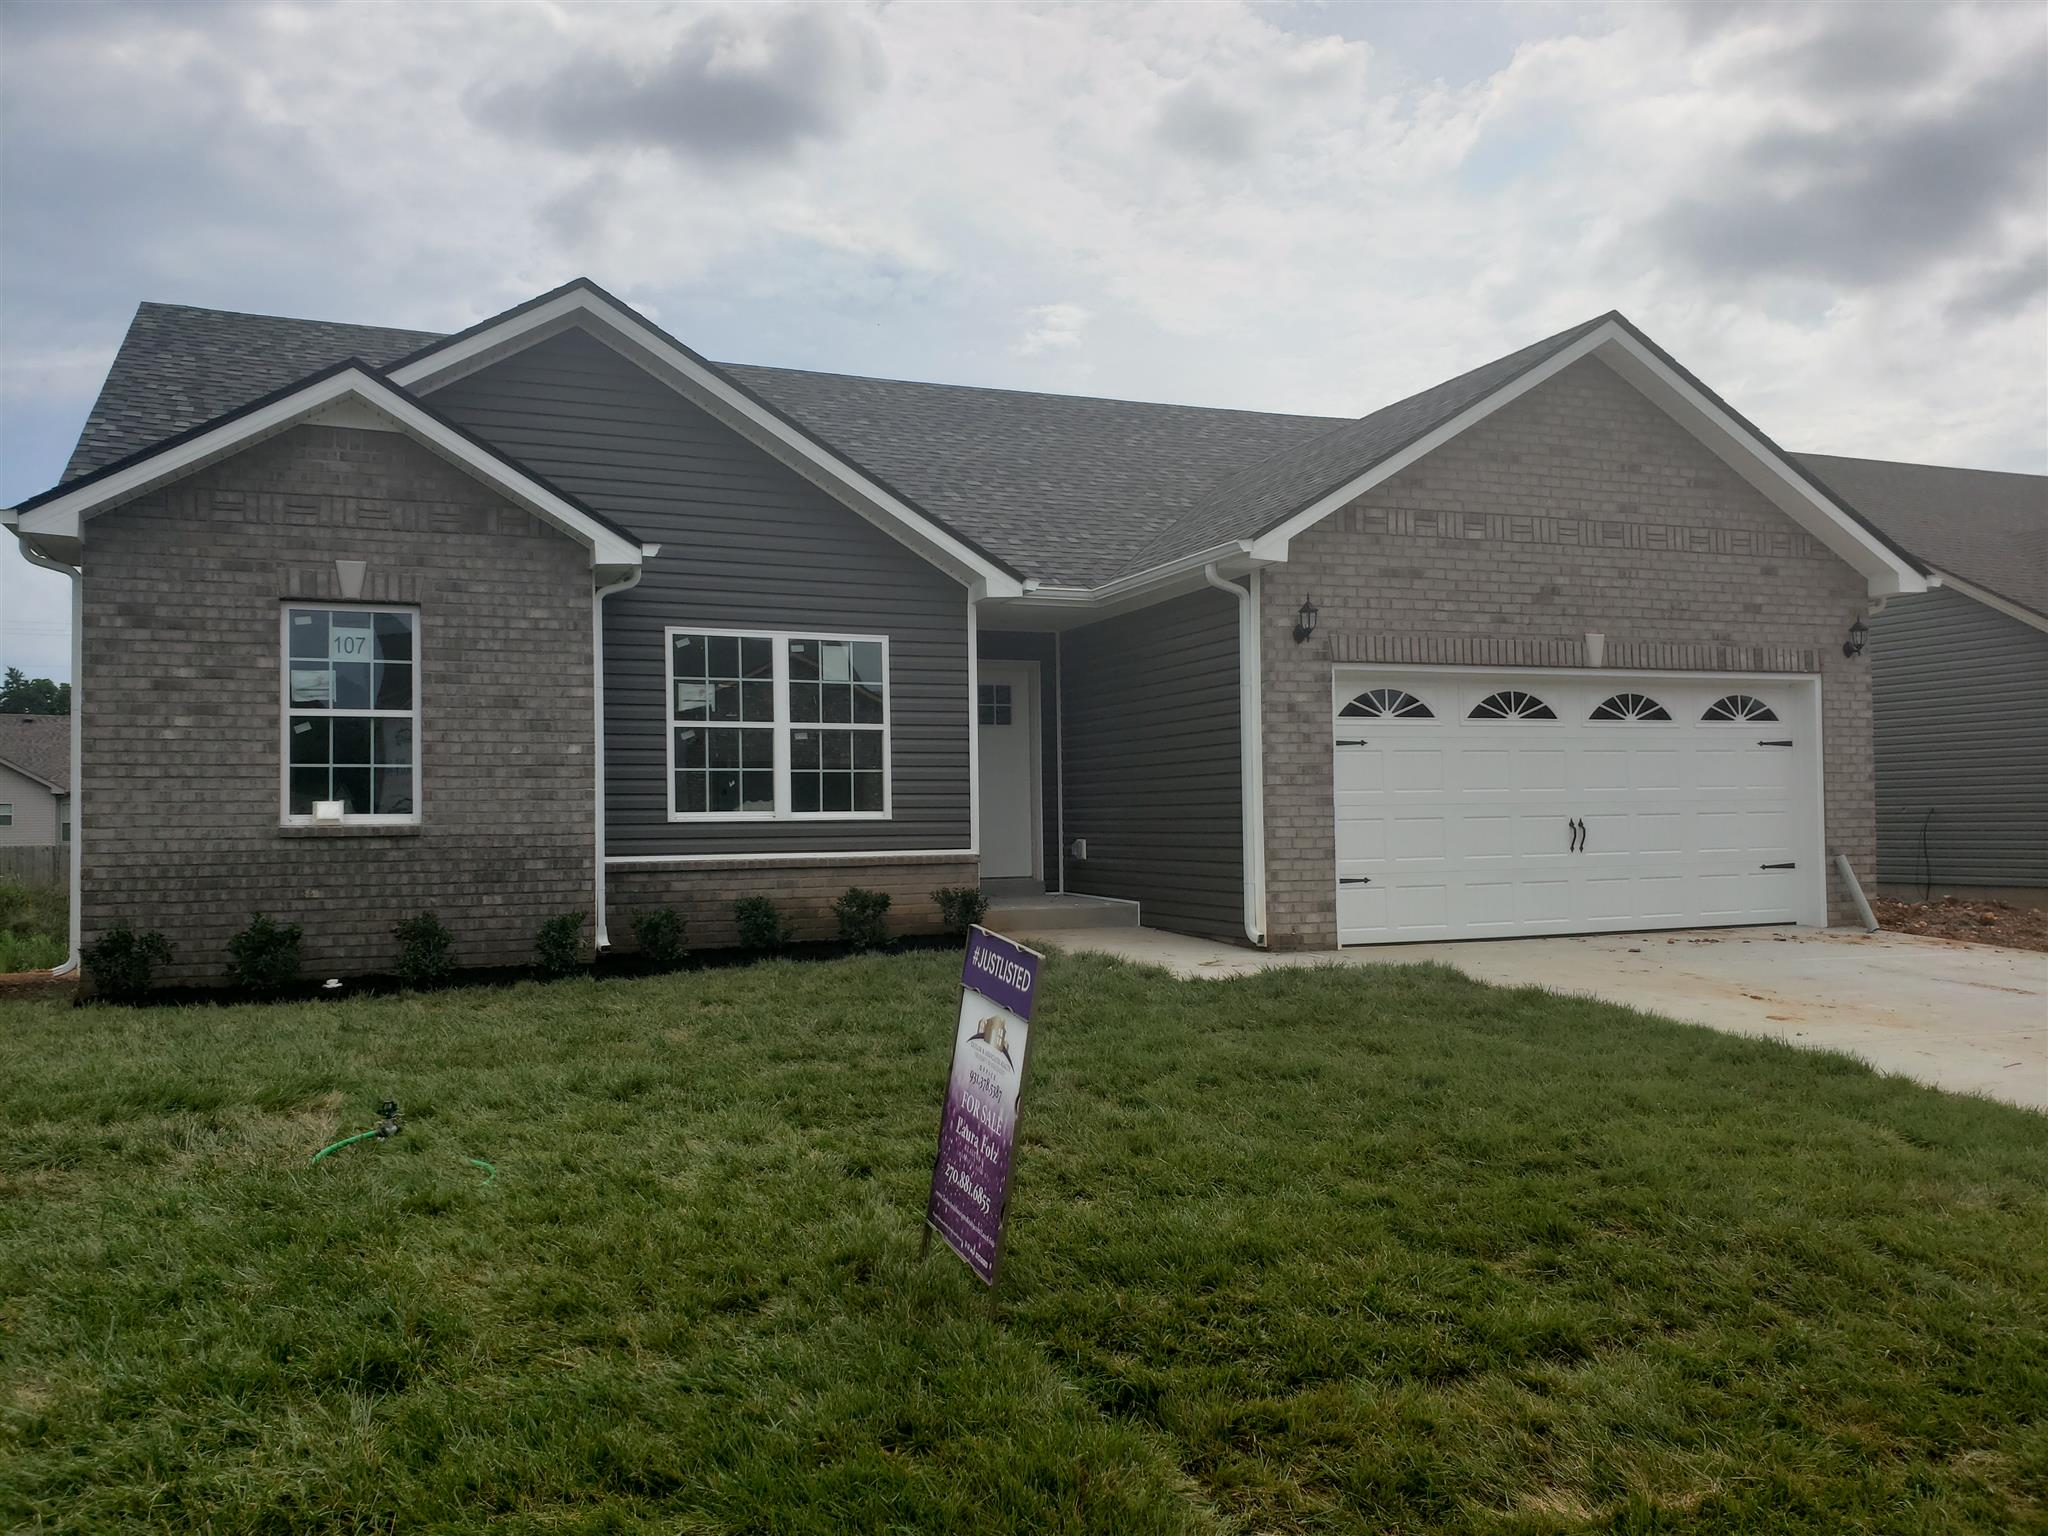 107 Rose Edd, Oak Grove, KY 42262 - Oak Grove, KY real estate listing